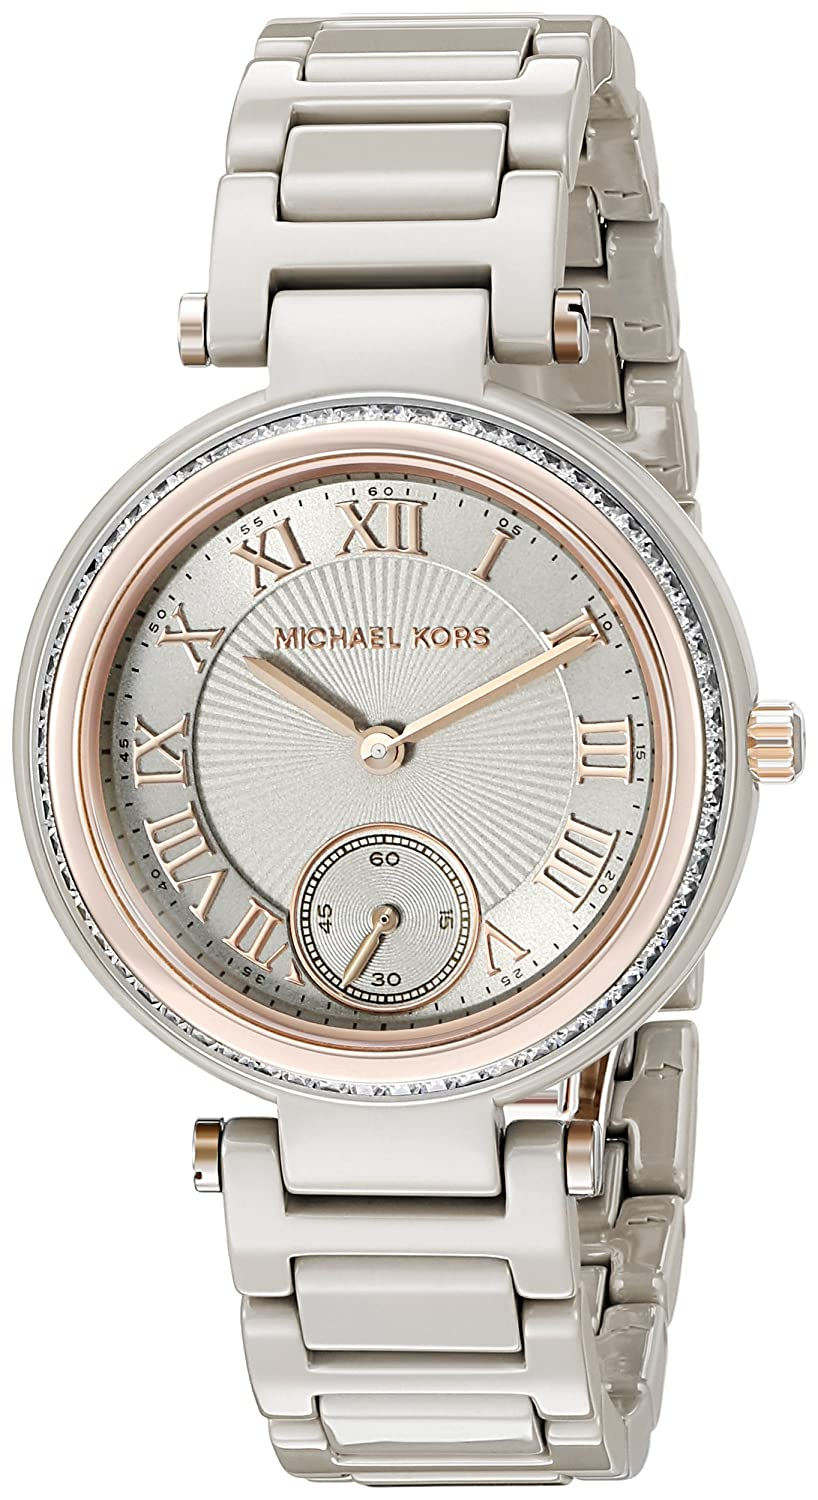 dfa4a11cfe51 Amazon.com  Michael Kors Women s Mini Skylar Grey Watch MK6241  Watches